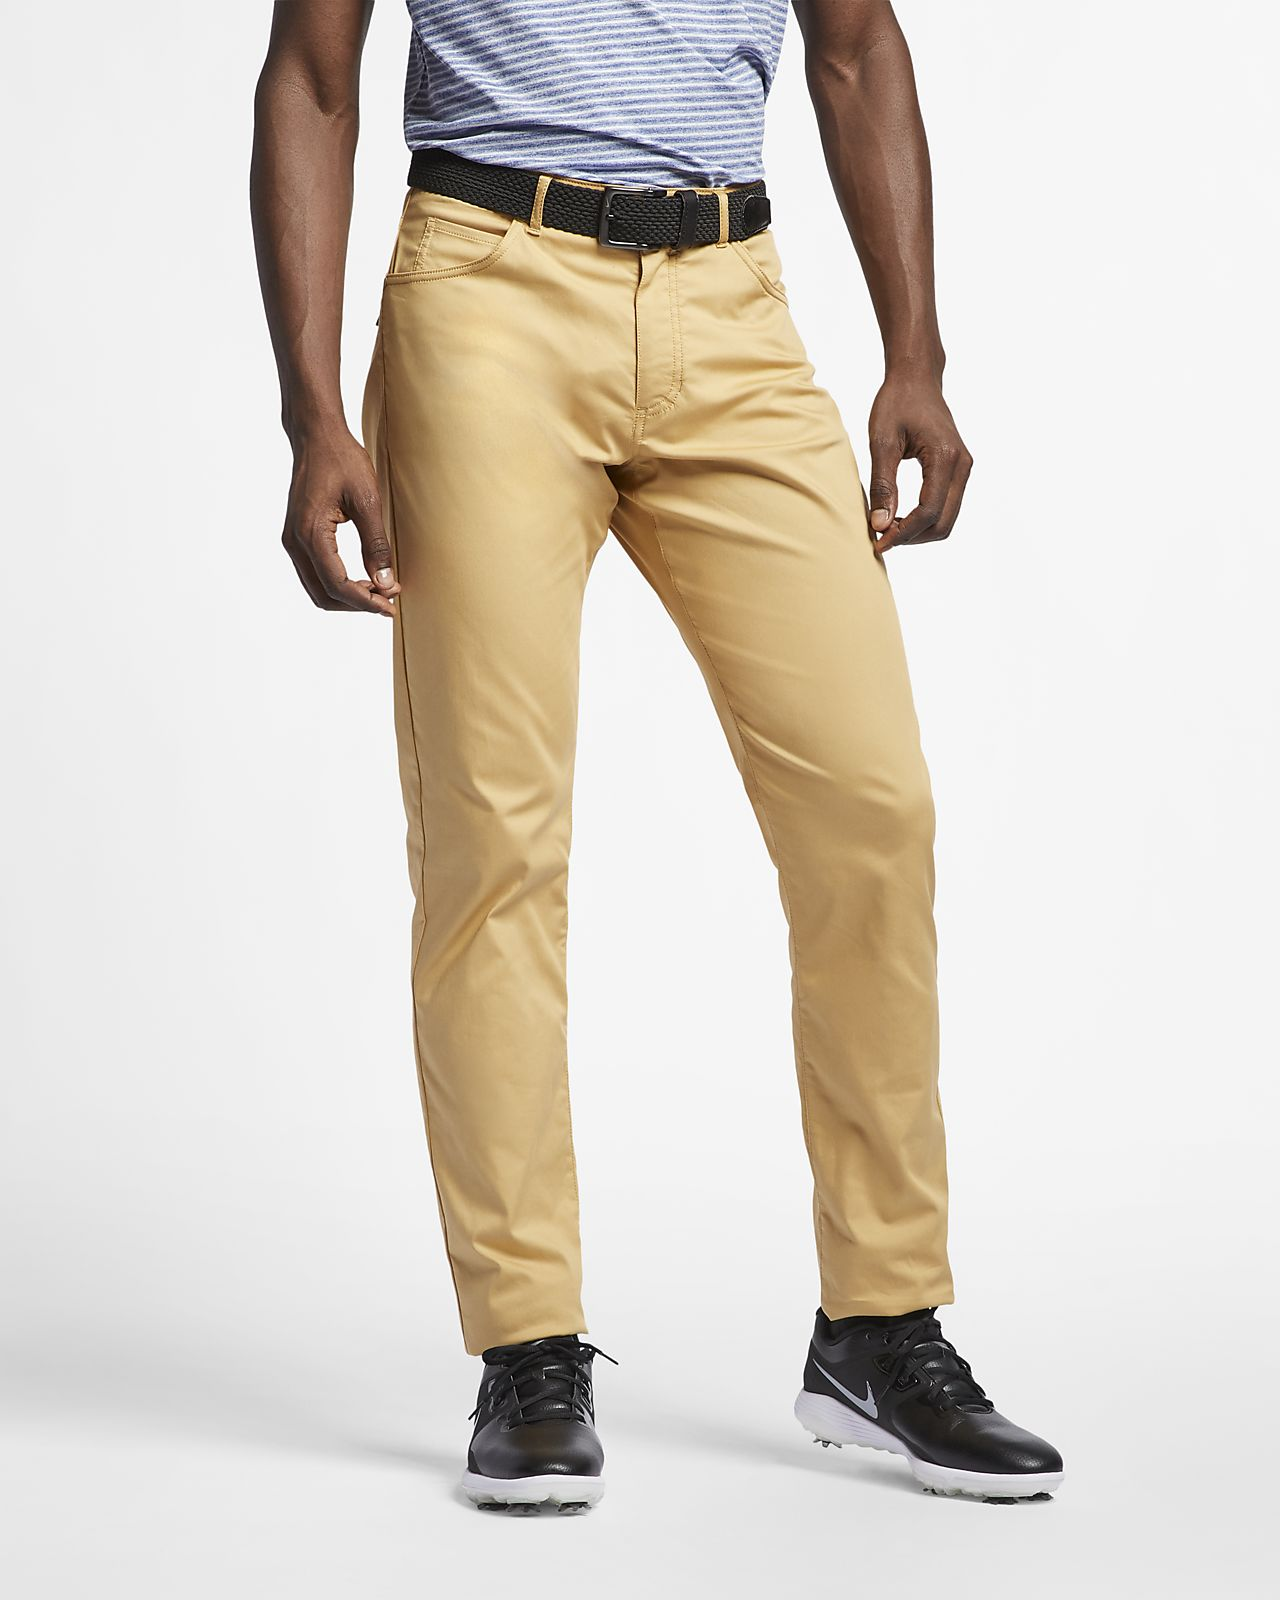 nike 6 pocket golf pants